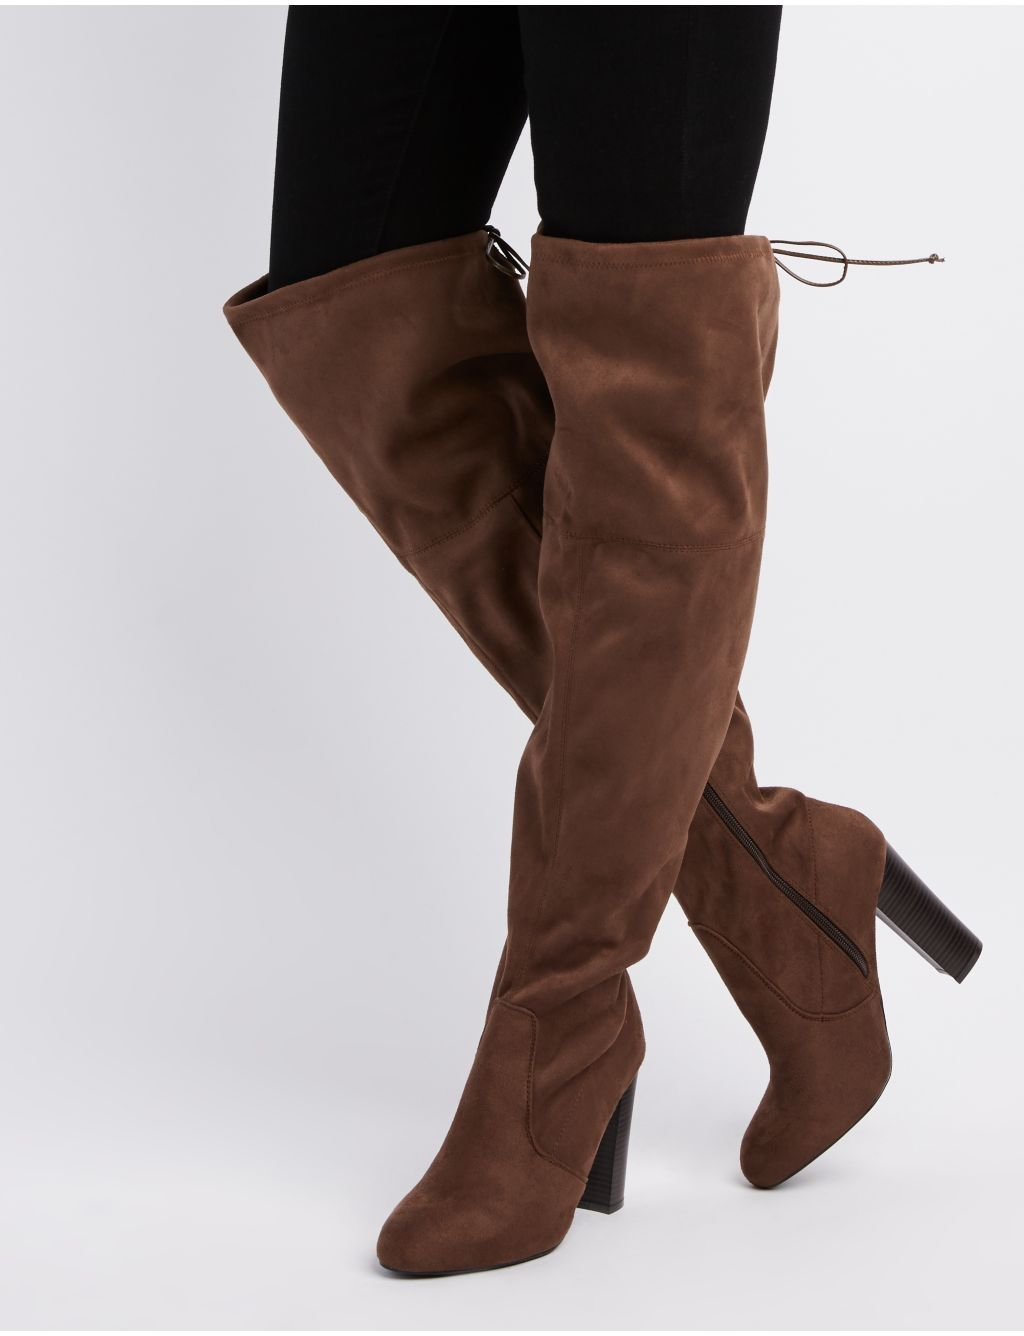 bb57c76d7ba Charlotte Russe Wide Width Tie-Back Over-The-Knee Boots. updating Prices